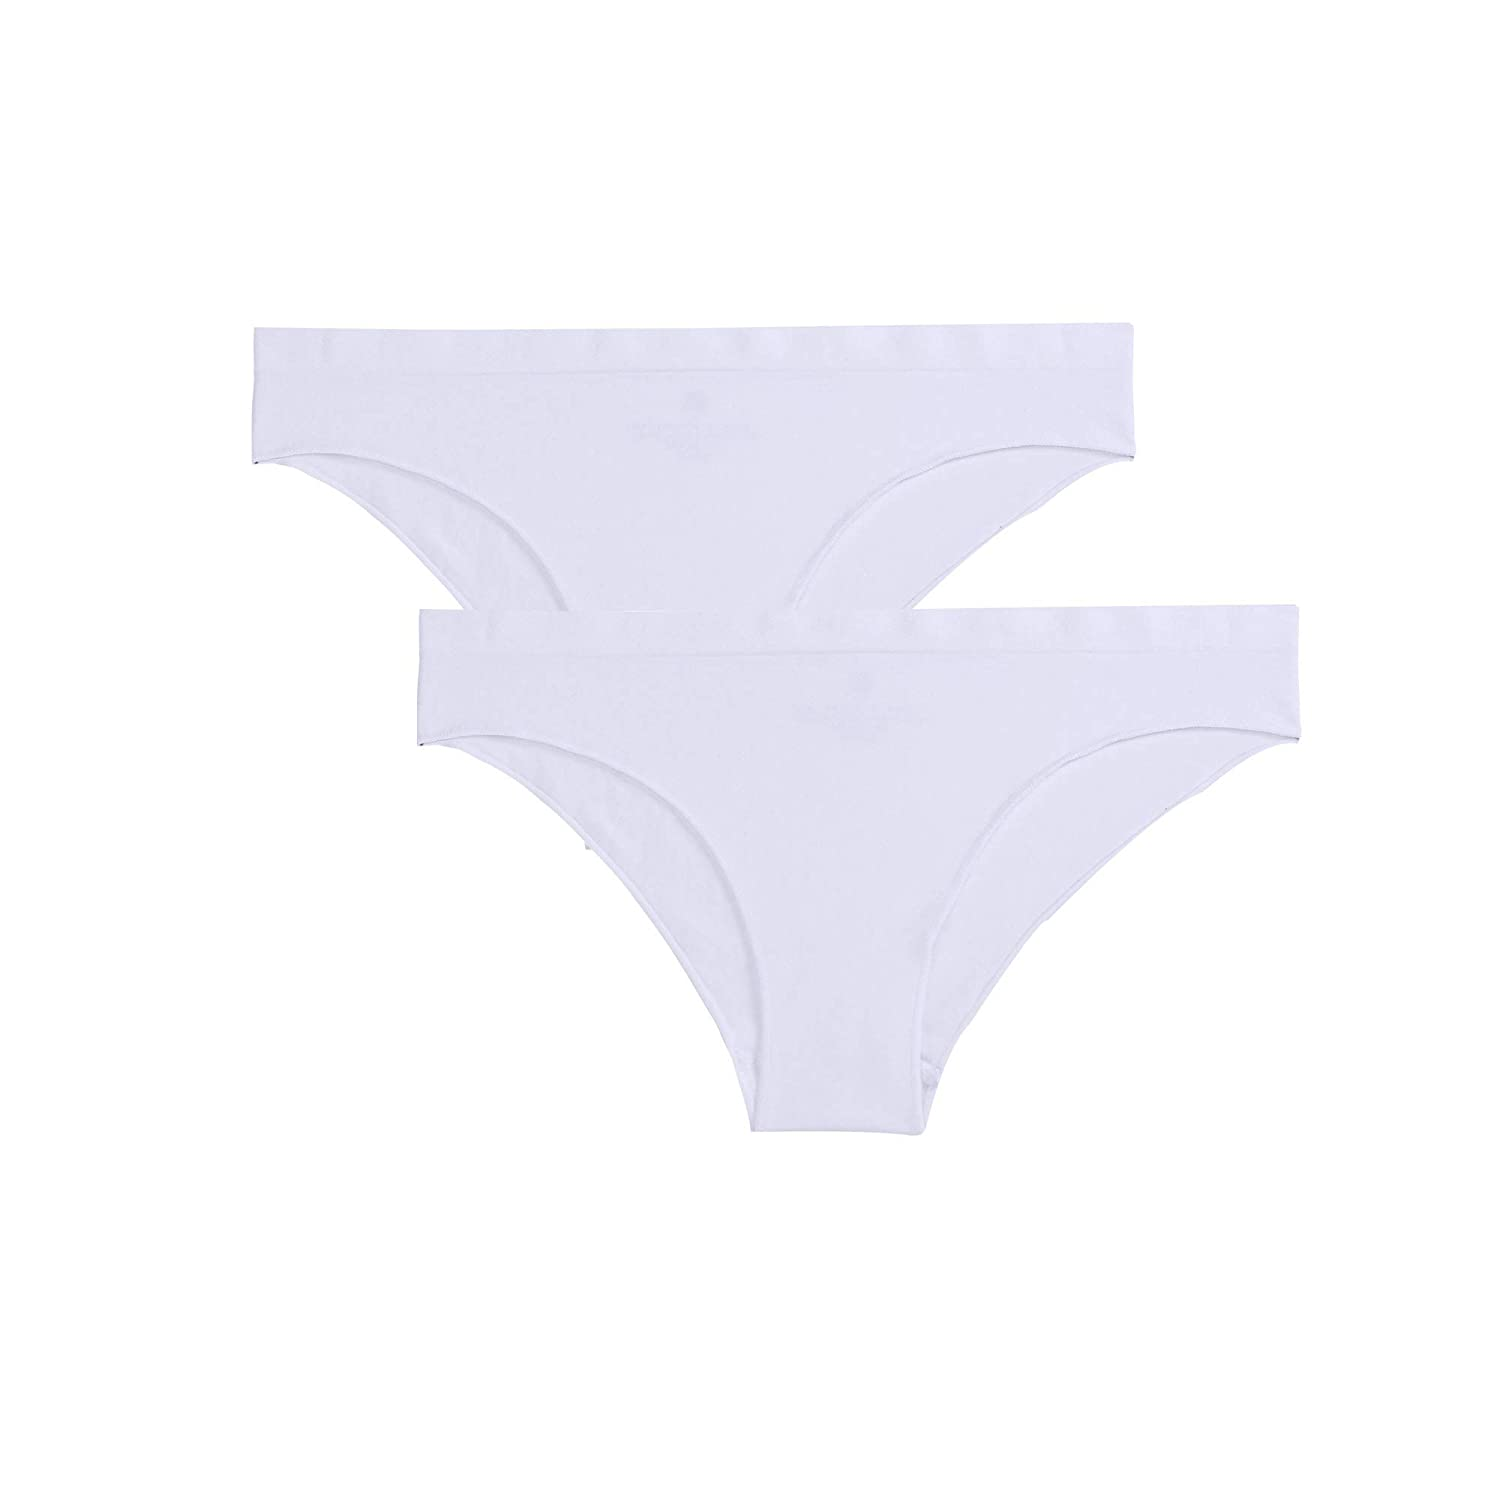 a60012e06 Ruxia Women s Seamless Hipster Panties Comfortable Underwear Stretch Bikini  Panty 5 Pack at Amazon Women s Clothing store